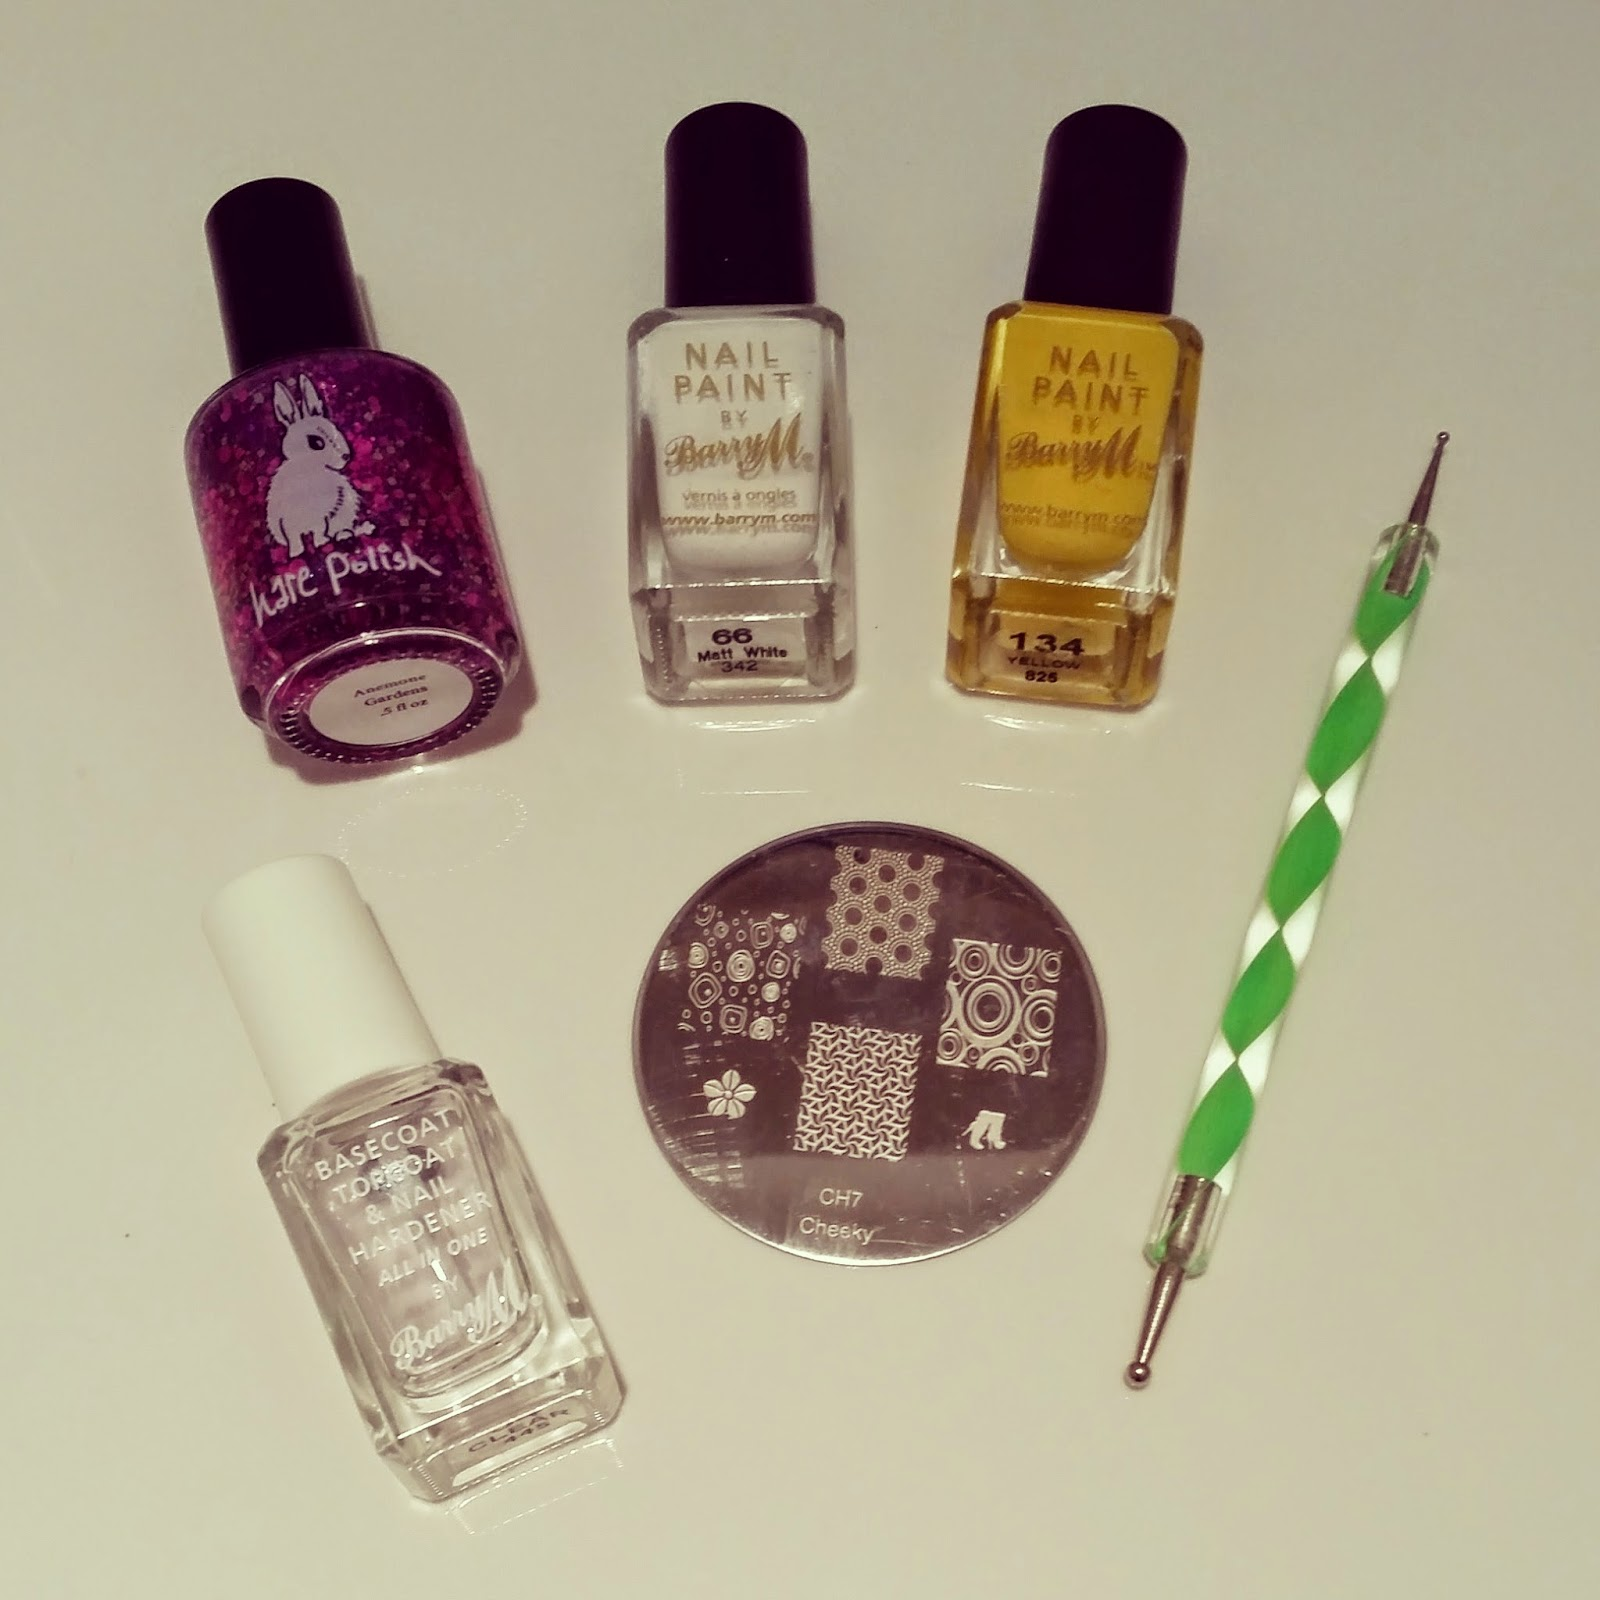 hare-polish-cheeky-stamping-nails